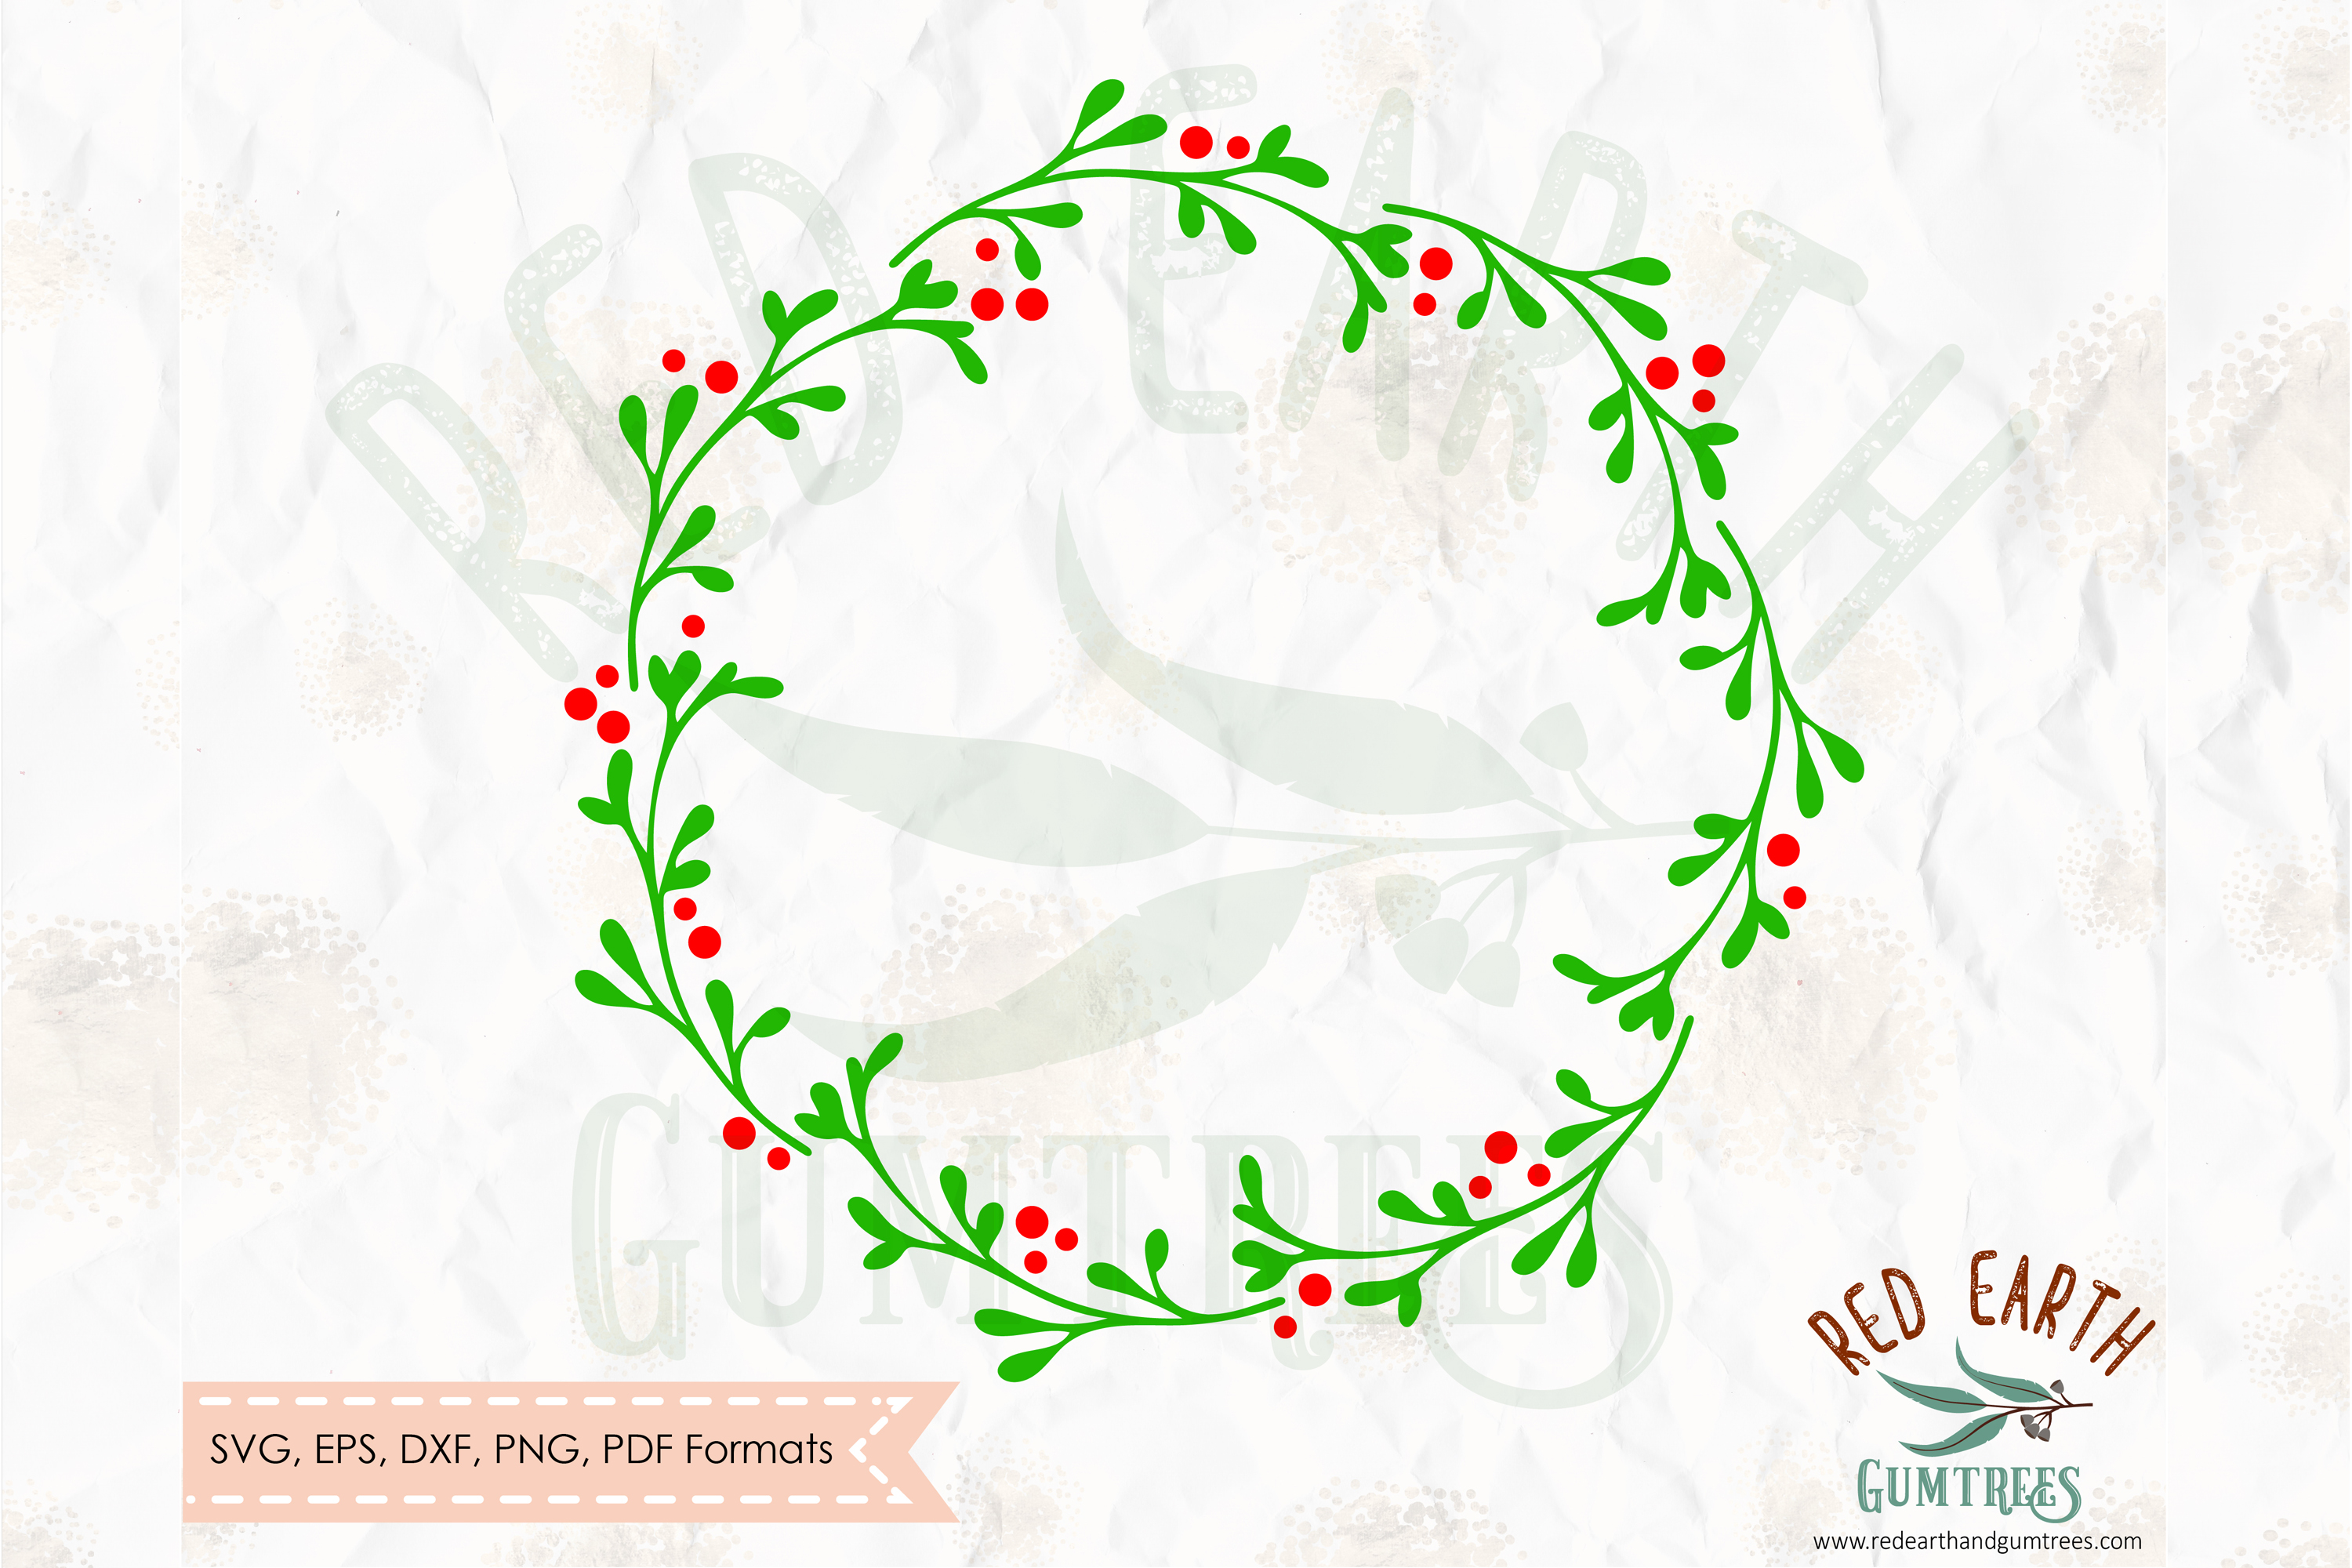 Download Free Plain Christmas Wreath Graphic By Redearth And Gumtrees for Cricut Explore, Silhouette and other cutting machines.